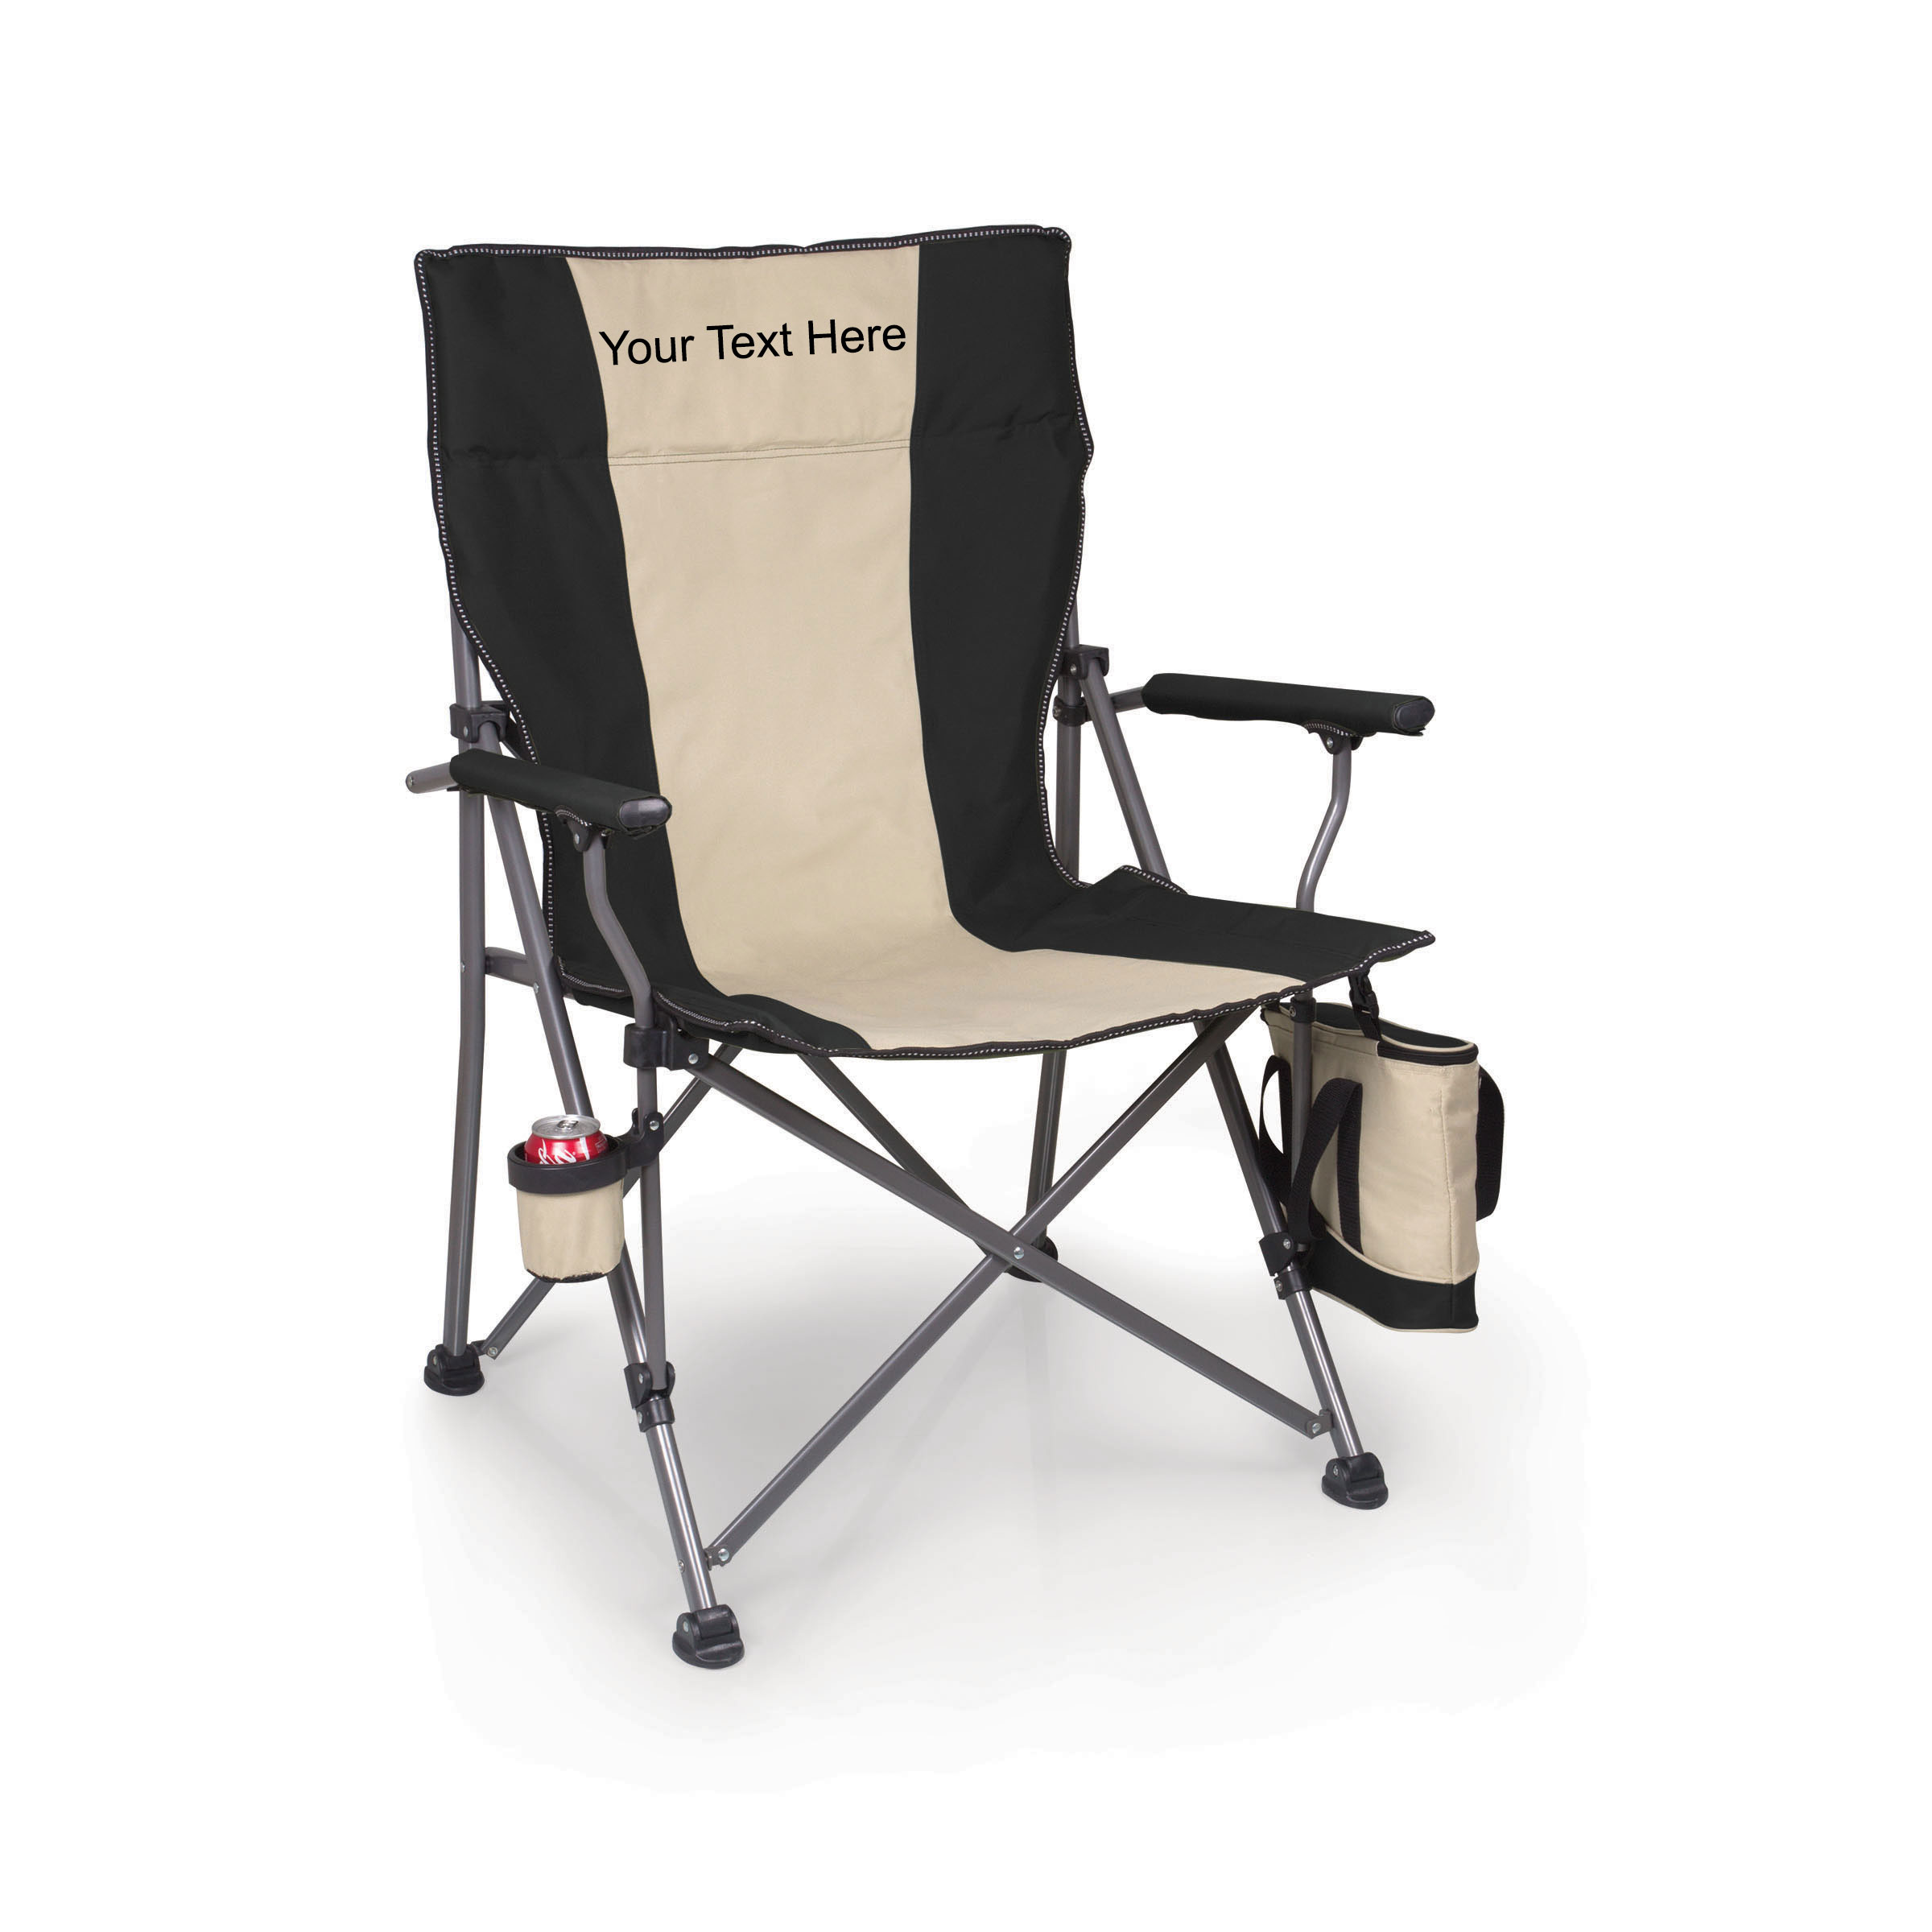 Personalized Imprinted Quad Bag Chairs